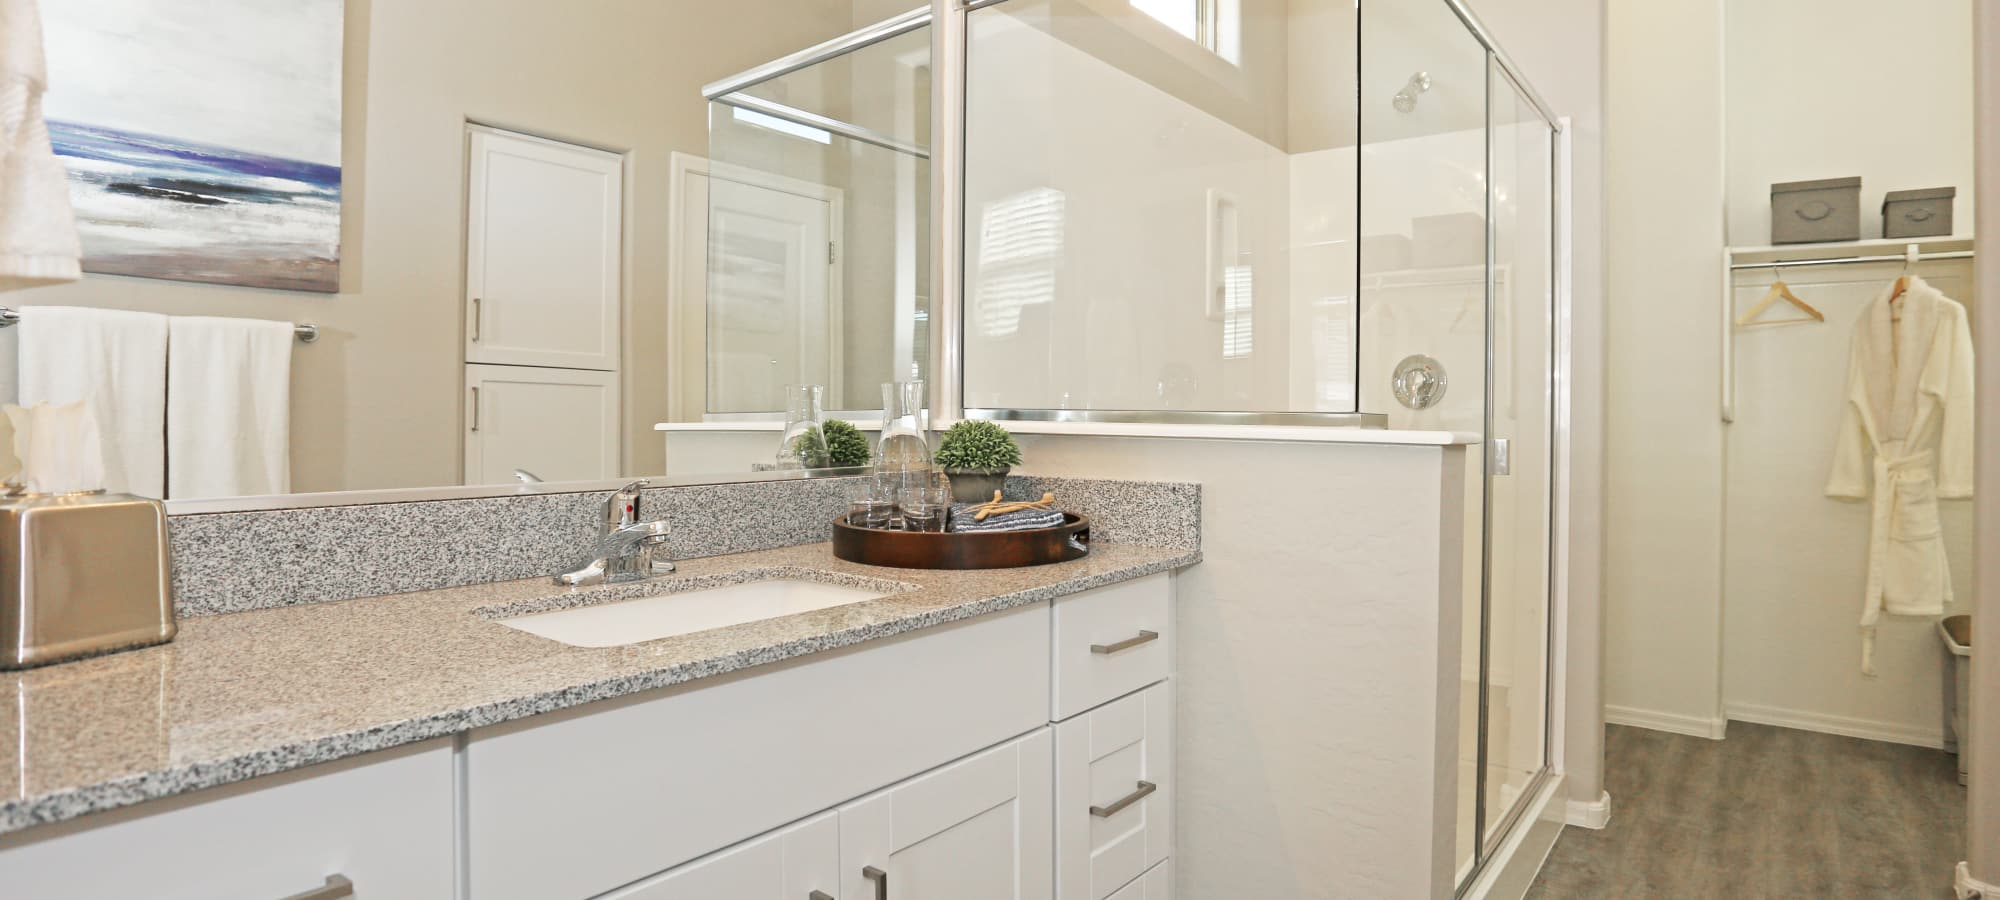 Granite countertop in bathroom of model home at Christopher Todd Communities At Marley Park in Surprise, Arizona